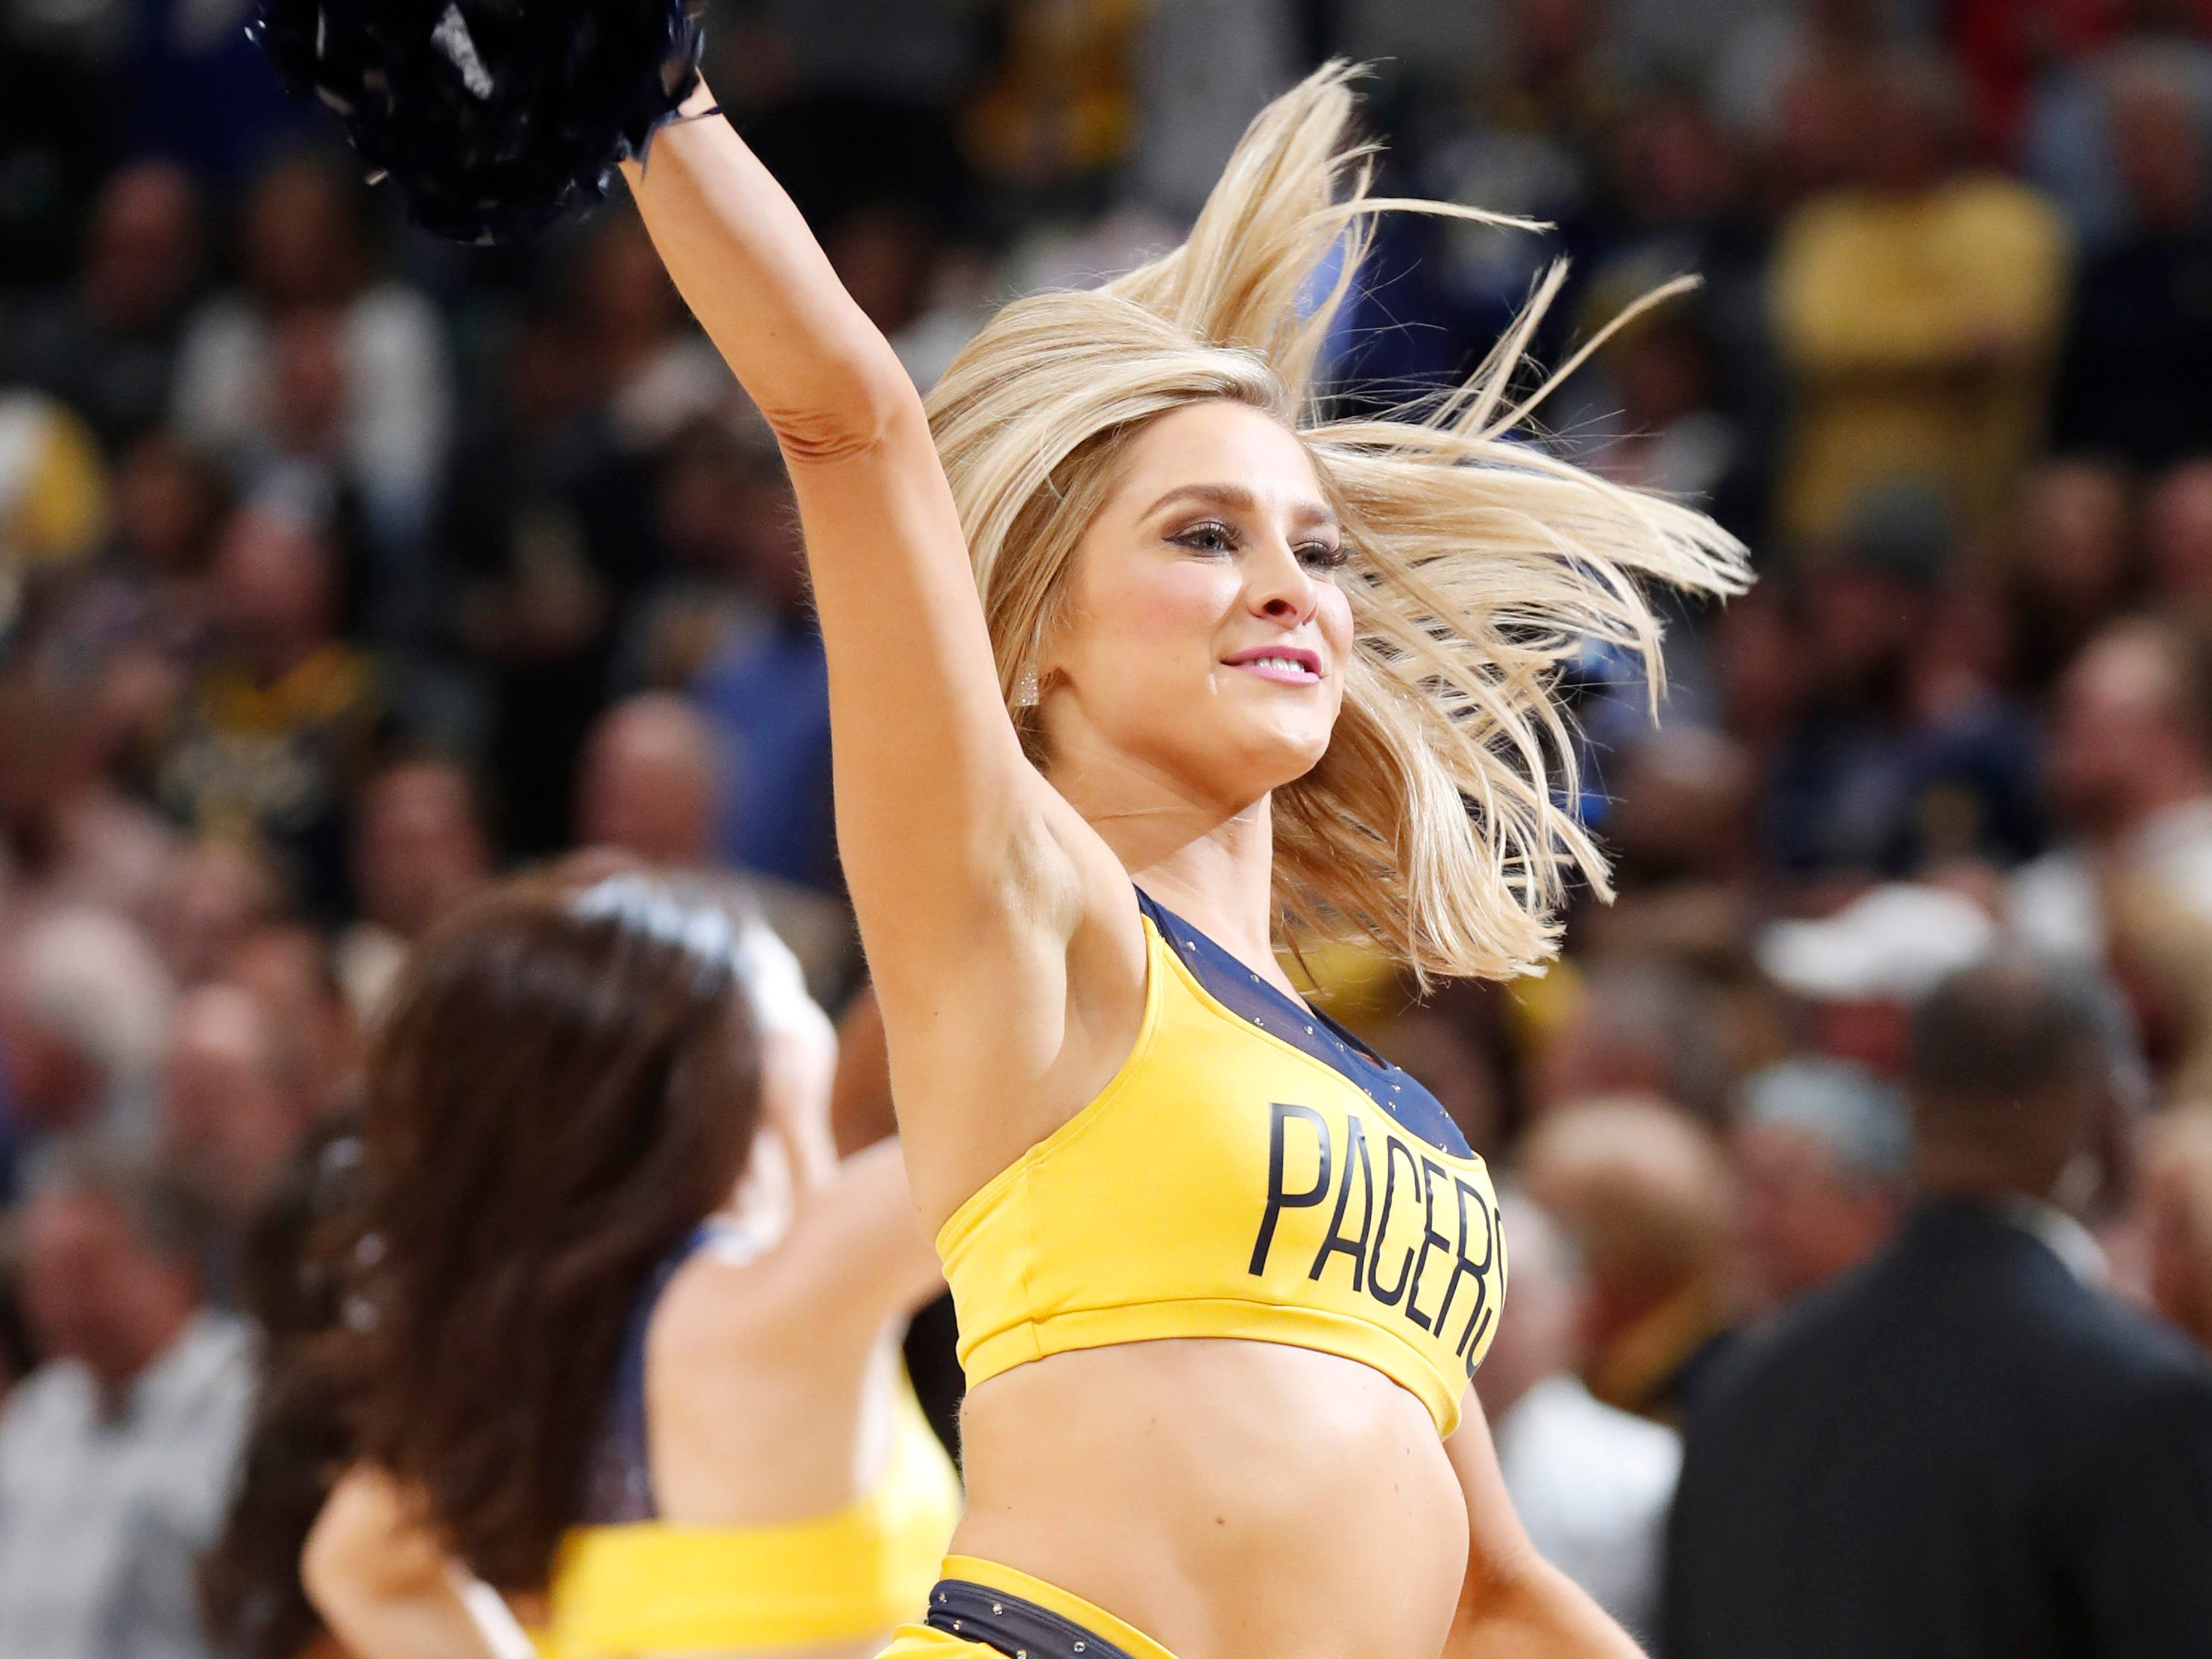 Oct. 17: Indiana Pacers cheerleaders perform a dance routine during the fourth quarter against the Memphis Grizzlies at Bankers Life Fieldhouse.